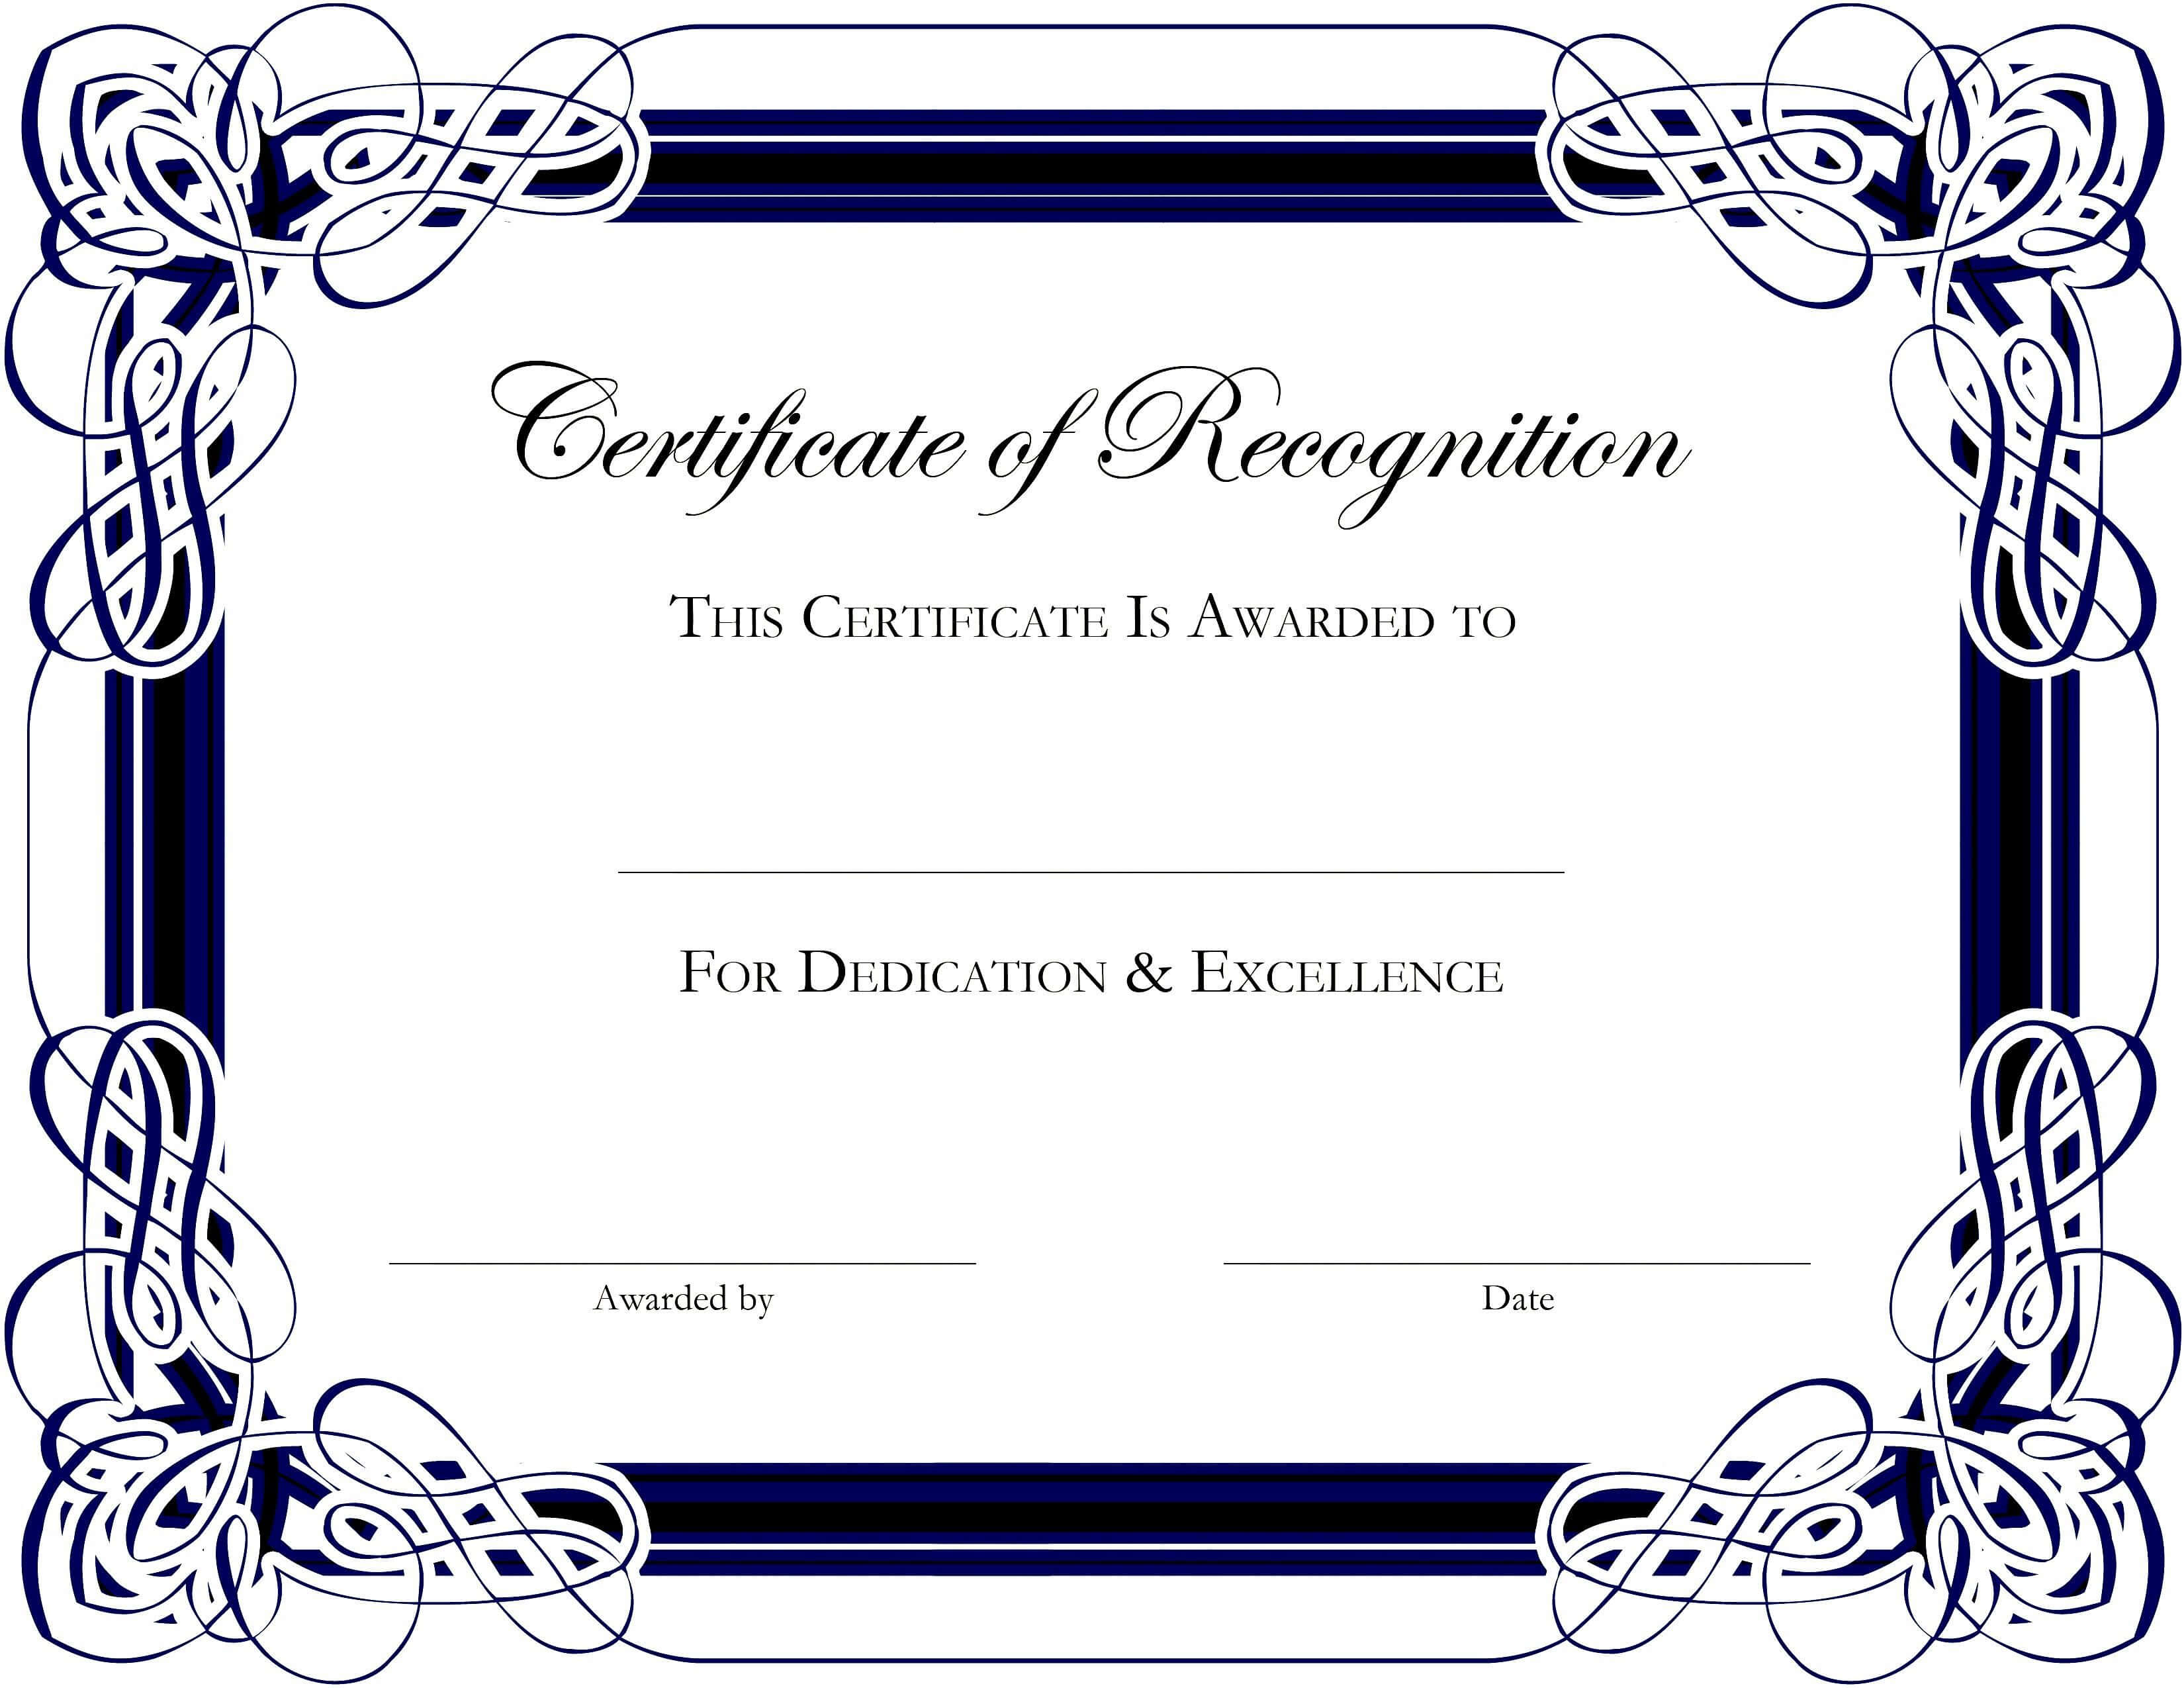 Award Templates For Microsoft Publisher | Besttemplate123 pertaining to Anniversary Certificate Template Free